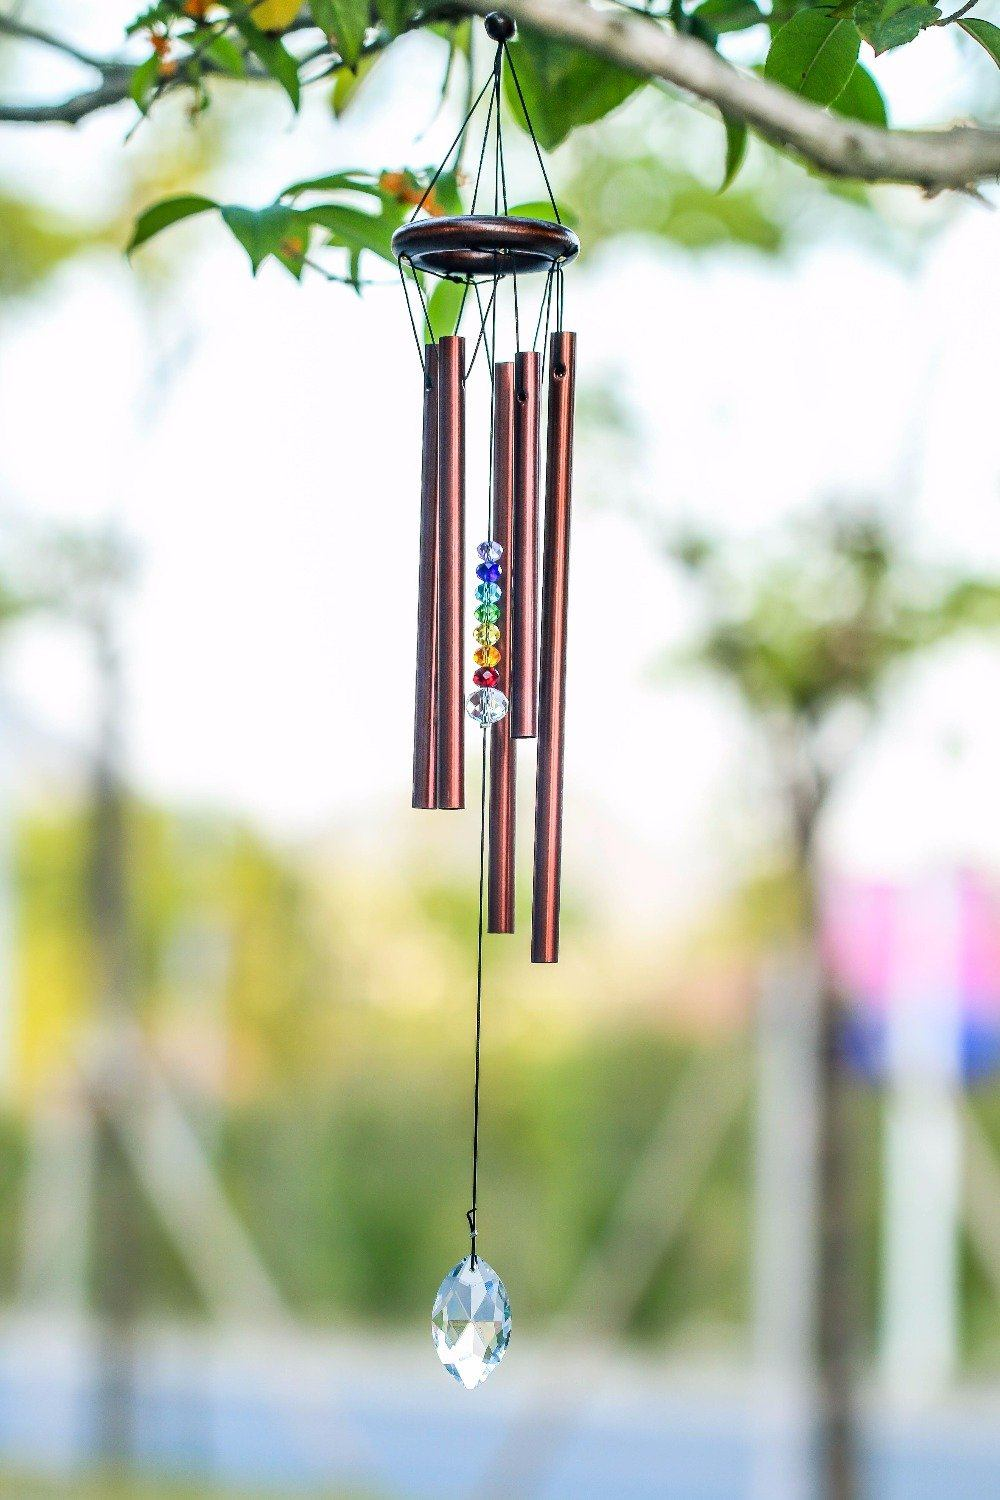 products/chakra-prism-windchime-3.jpg